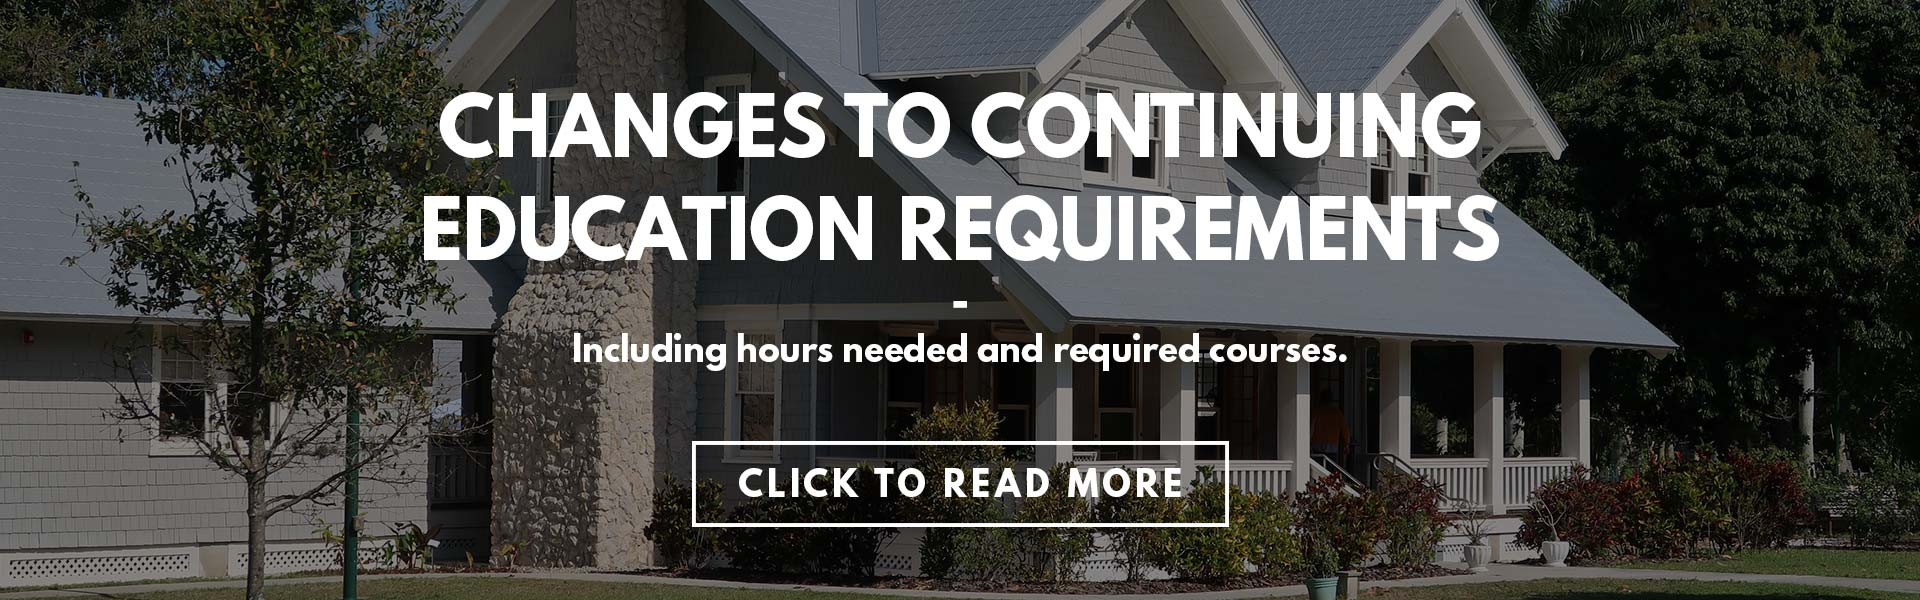 Changes to Continuing Education Requirements Info